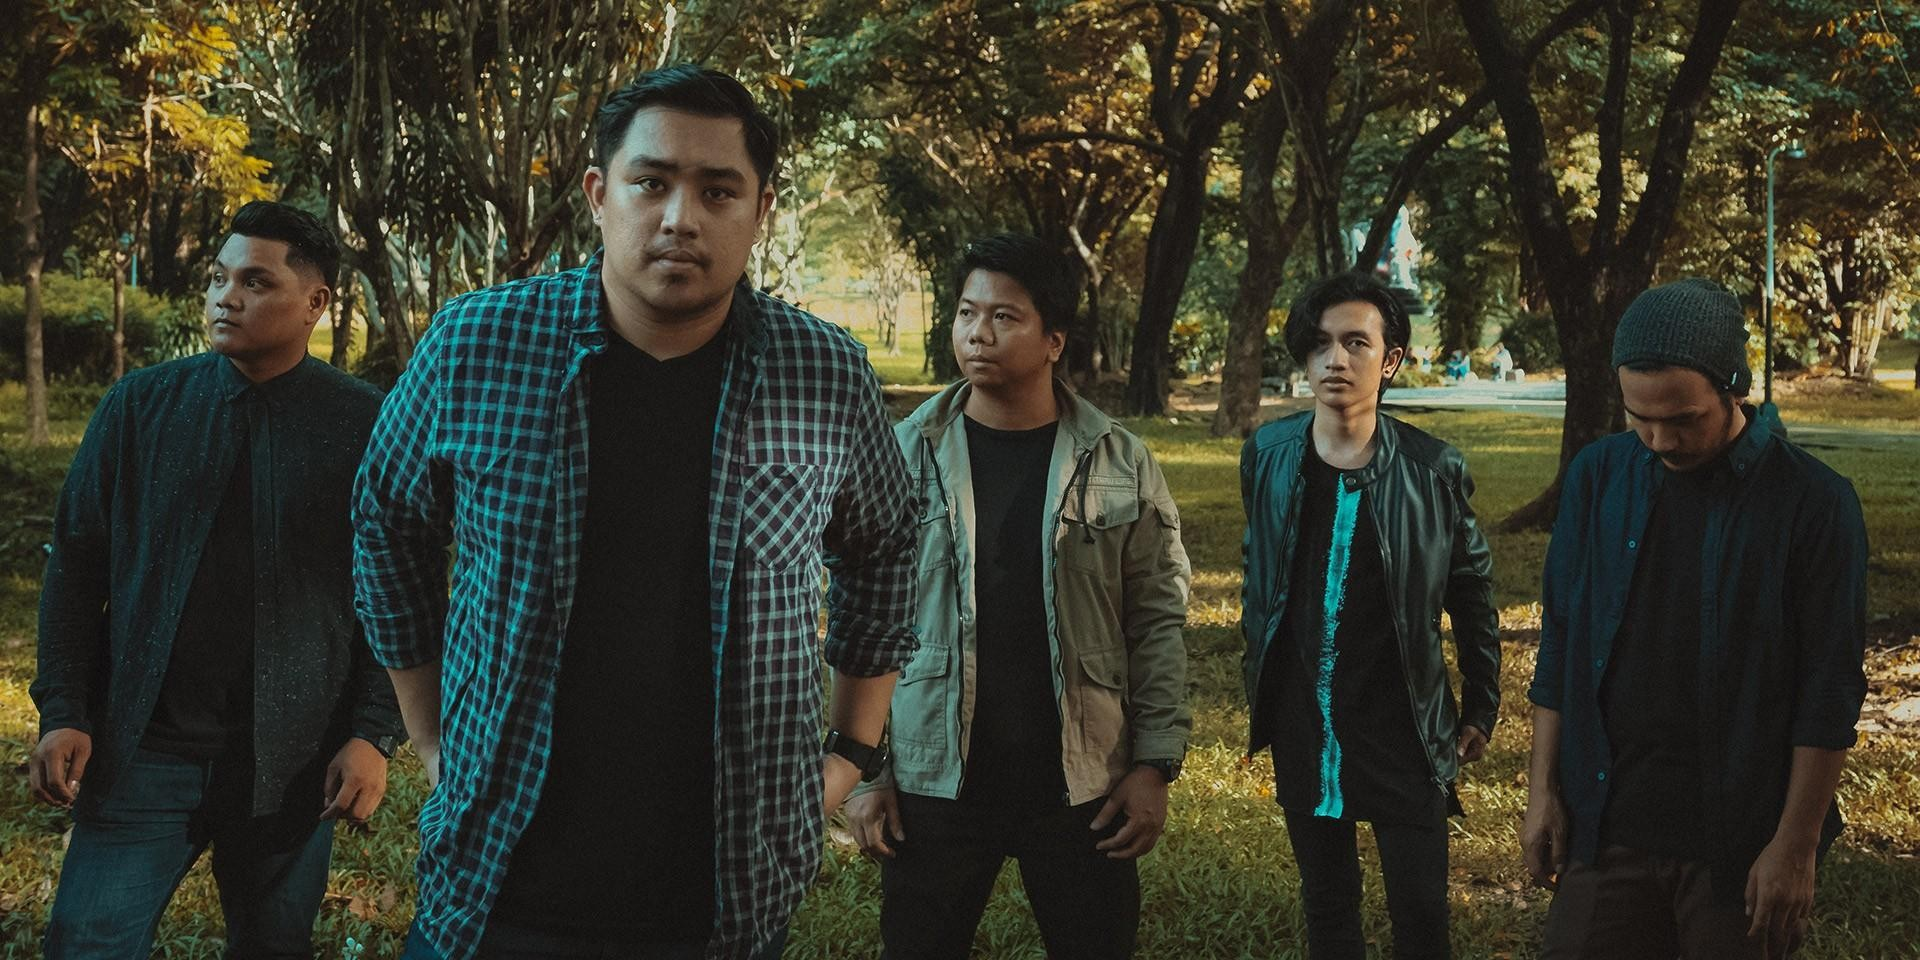 December Avenue to tour Canada in 2019